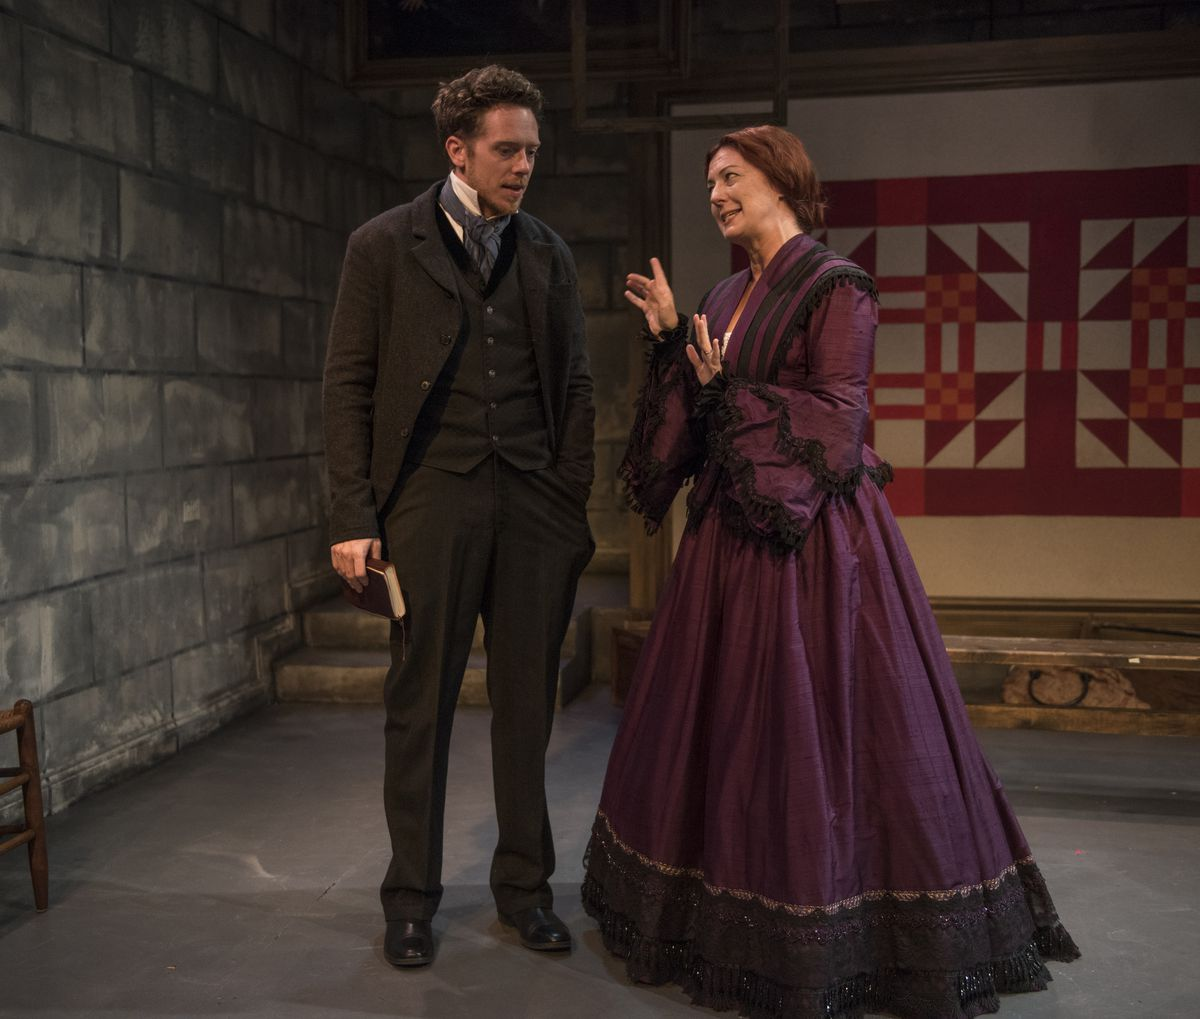 """Steve Haggard plays Dr. Simon Jordan and Jane Baxter Miller is Mrs. Rachel Lavell in the Rivendell Theatre production of """"Alias Grace."""" (Photo: Michael Brosilow)"""